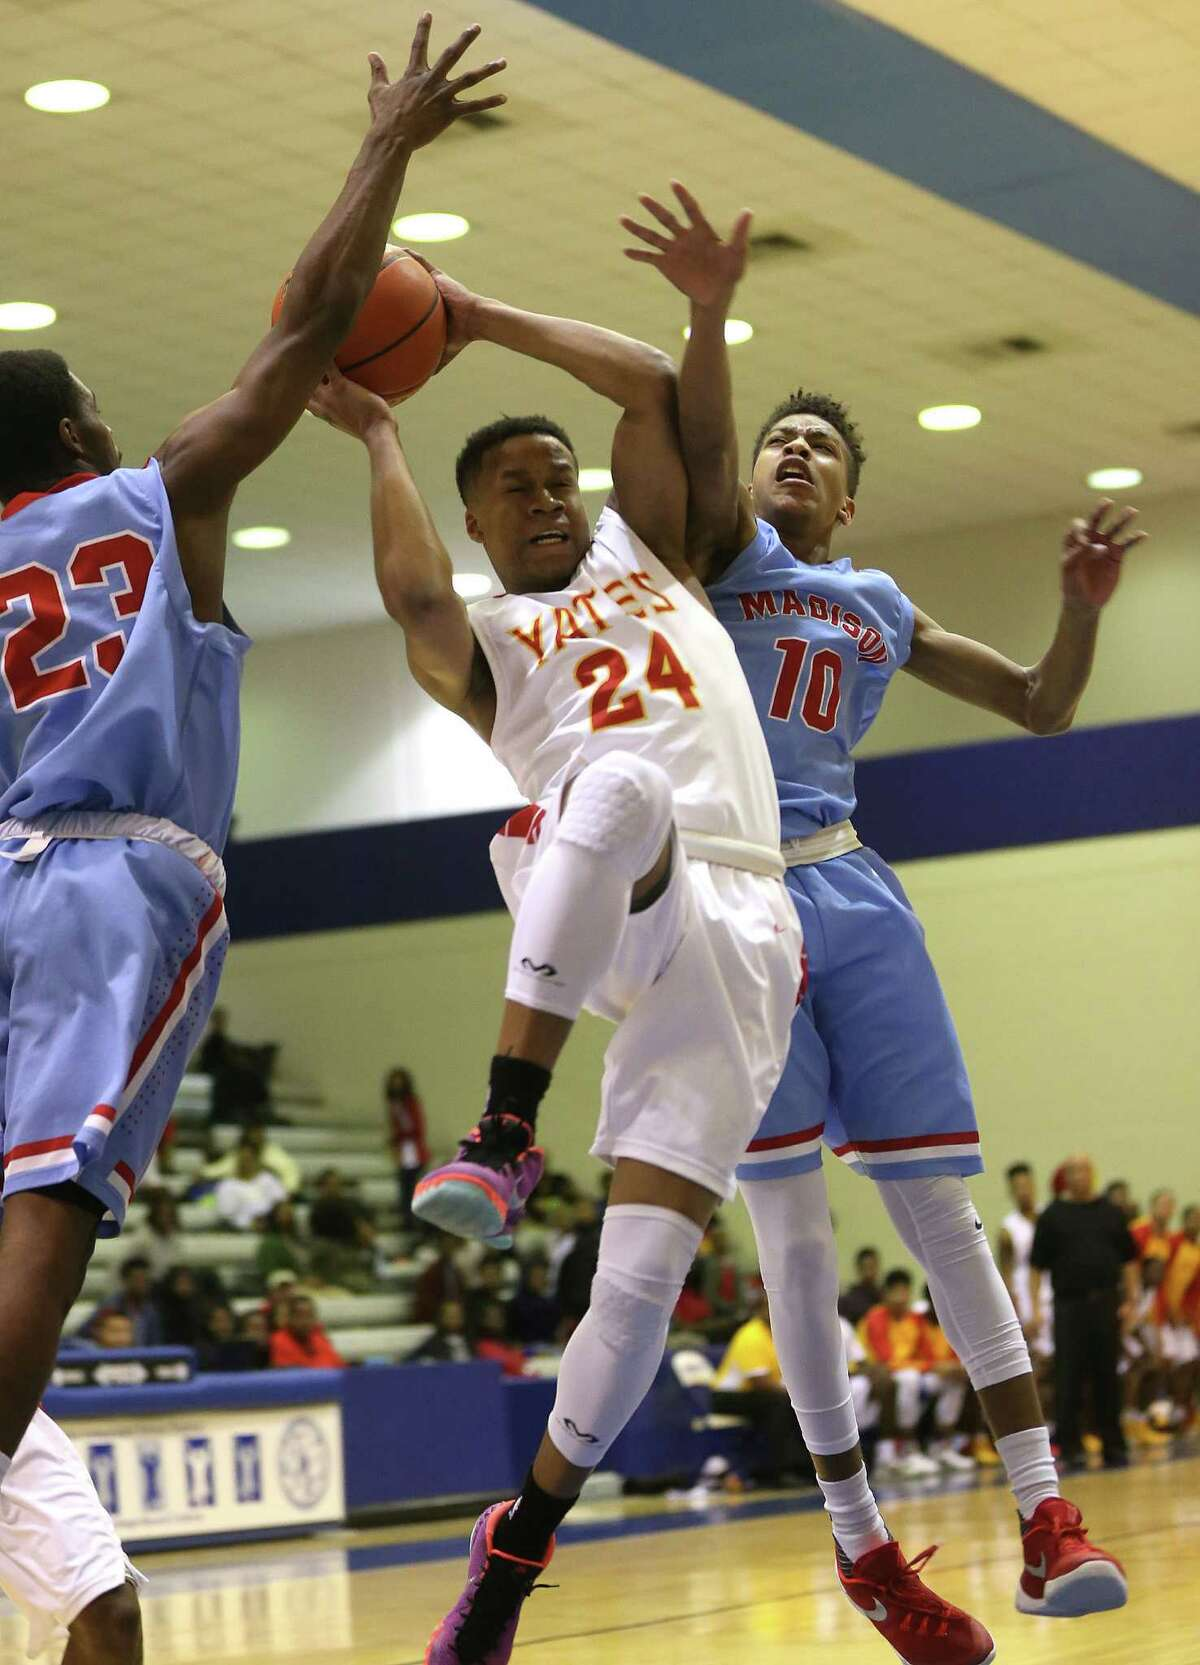 Yates' Jacob Young (24) cuts between Madison's Curtis Randle (23) and Jeremiah Gambrell (10) in the first half of high school basketball action between Yates and Madison at Barnett field house on Tuesday, Feb. 9, 2016, in Houston.